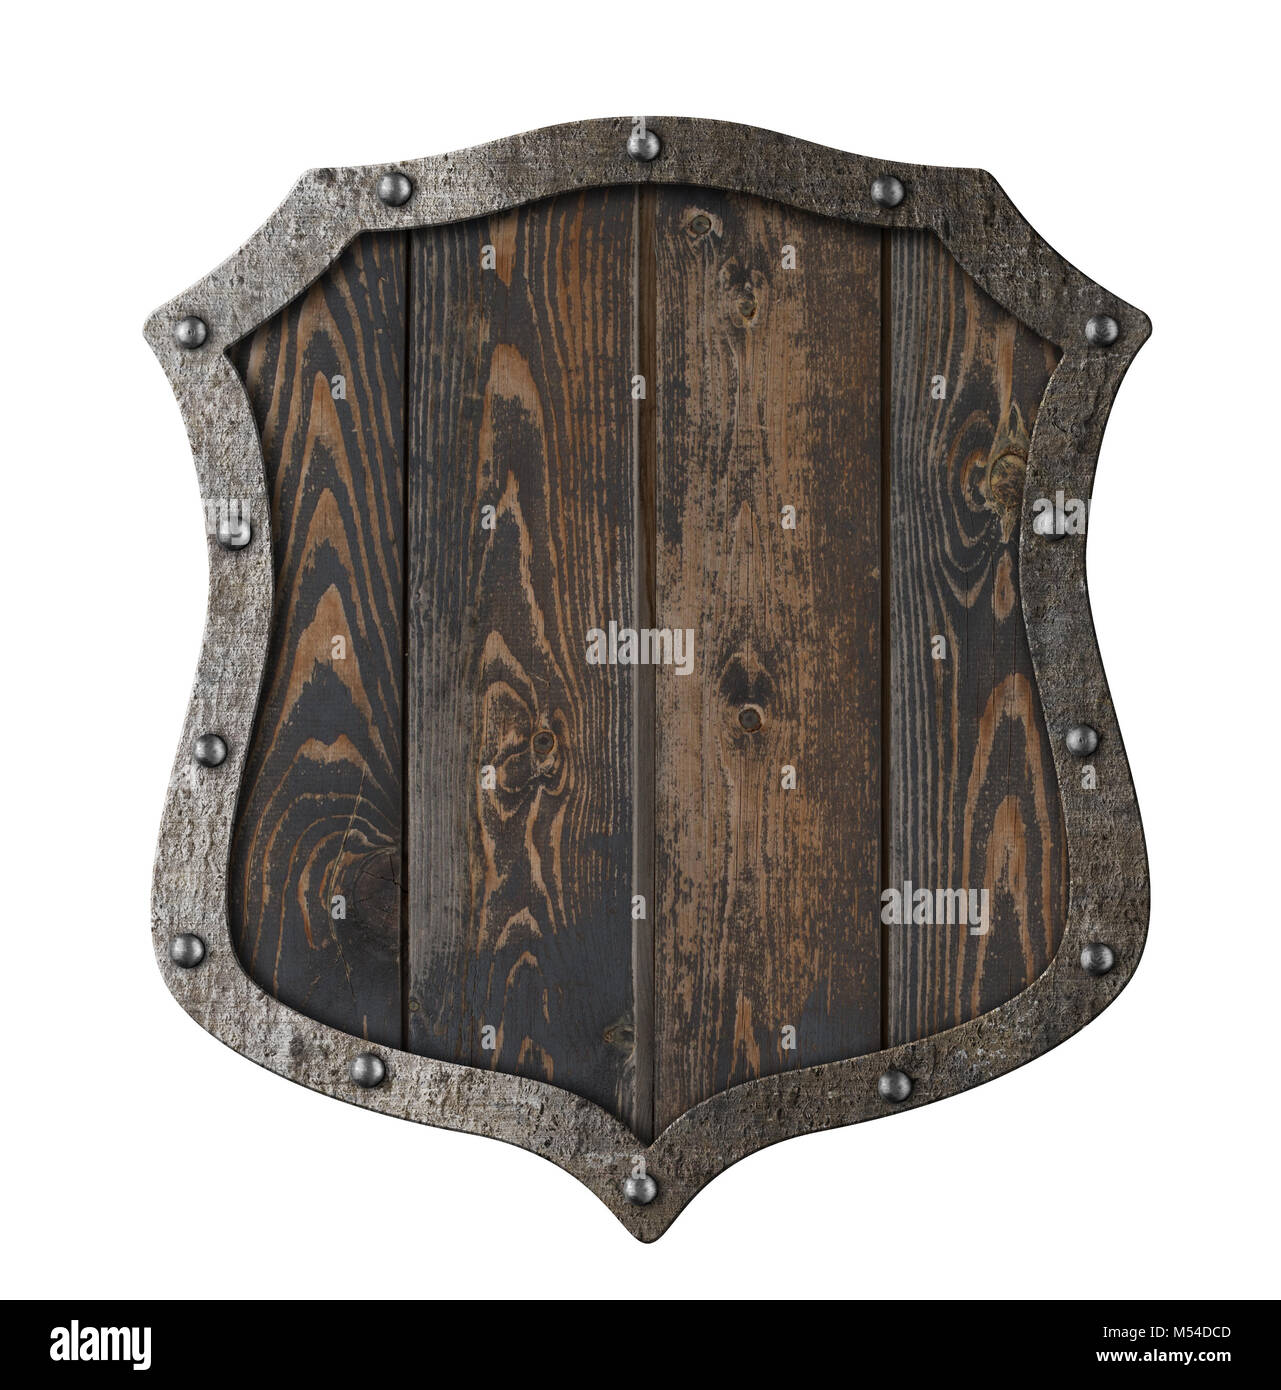 Wooden medieval heraldic shield isolated 3d illustration - Stock Image